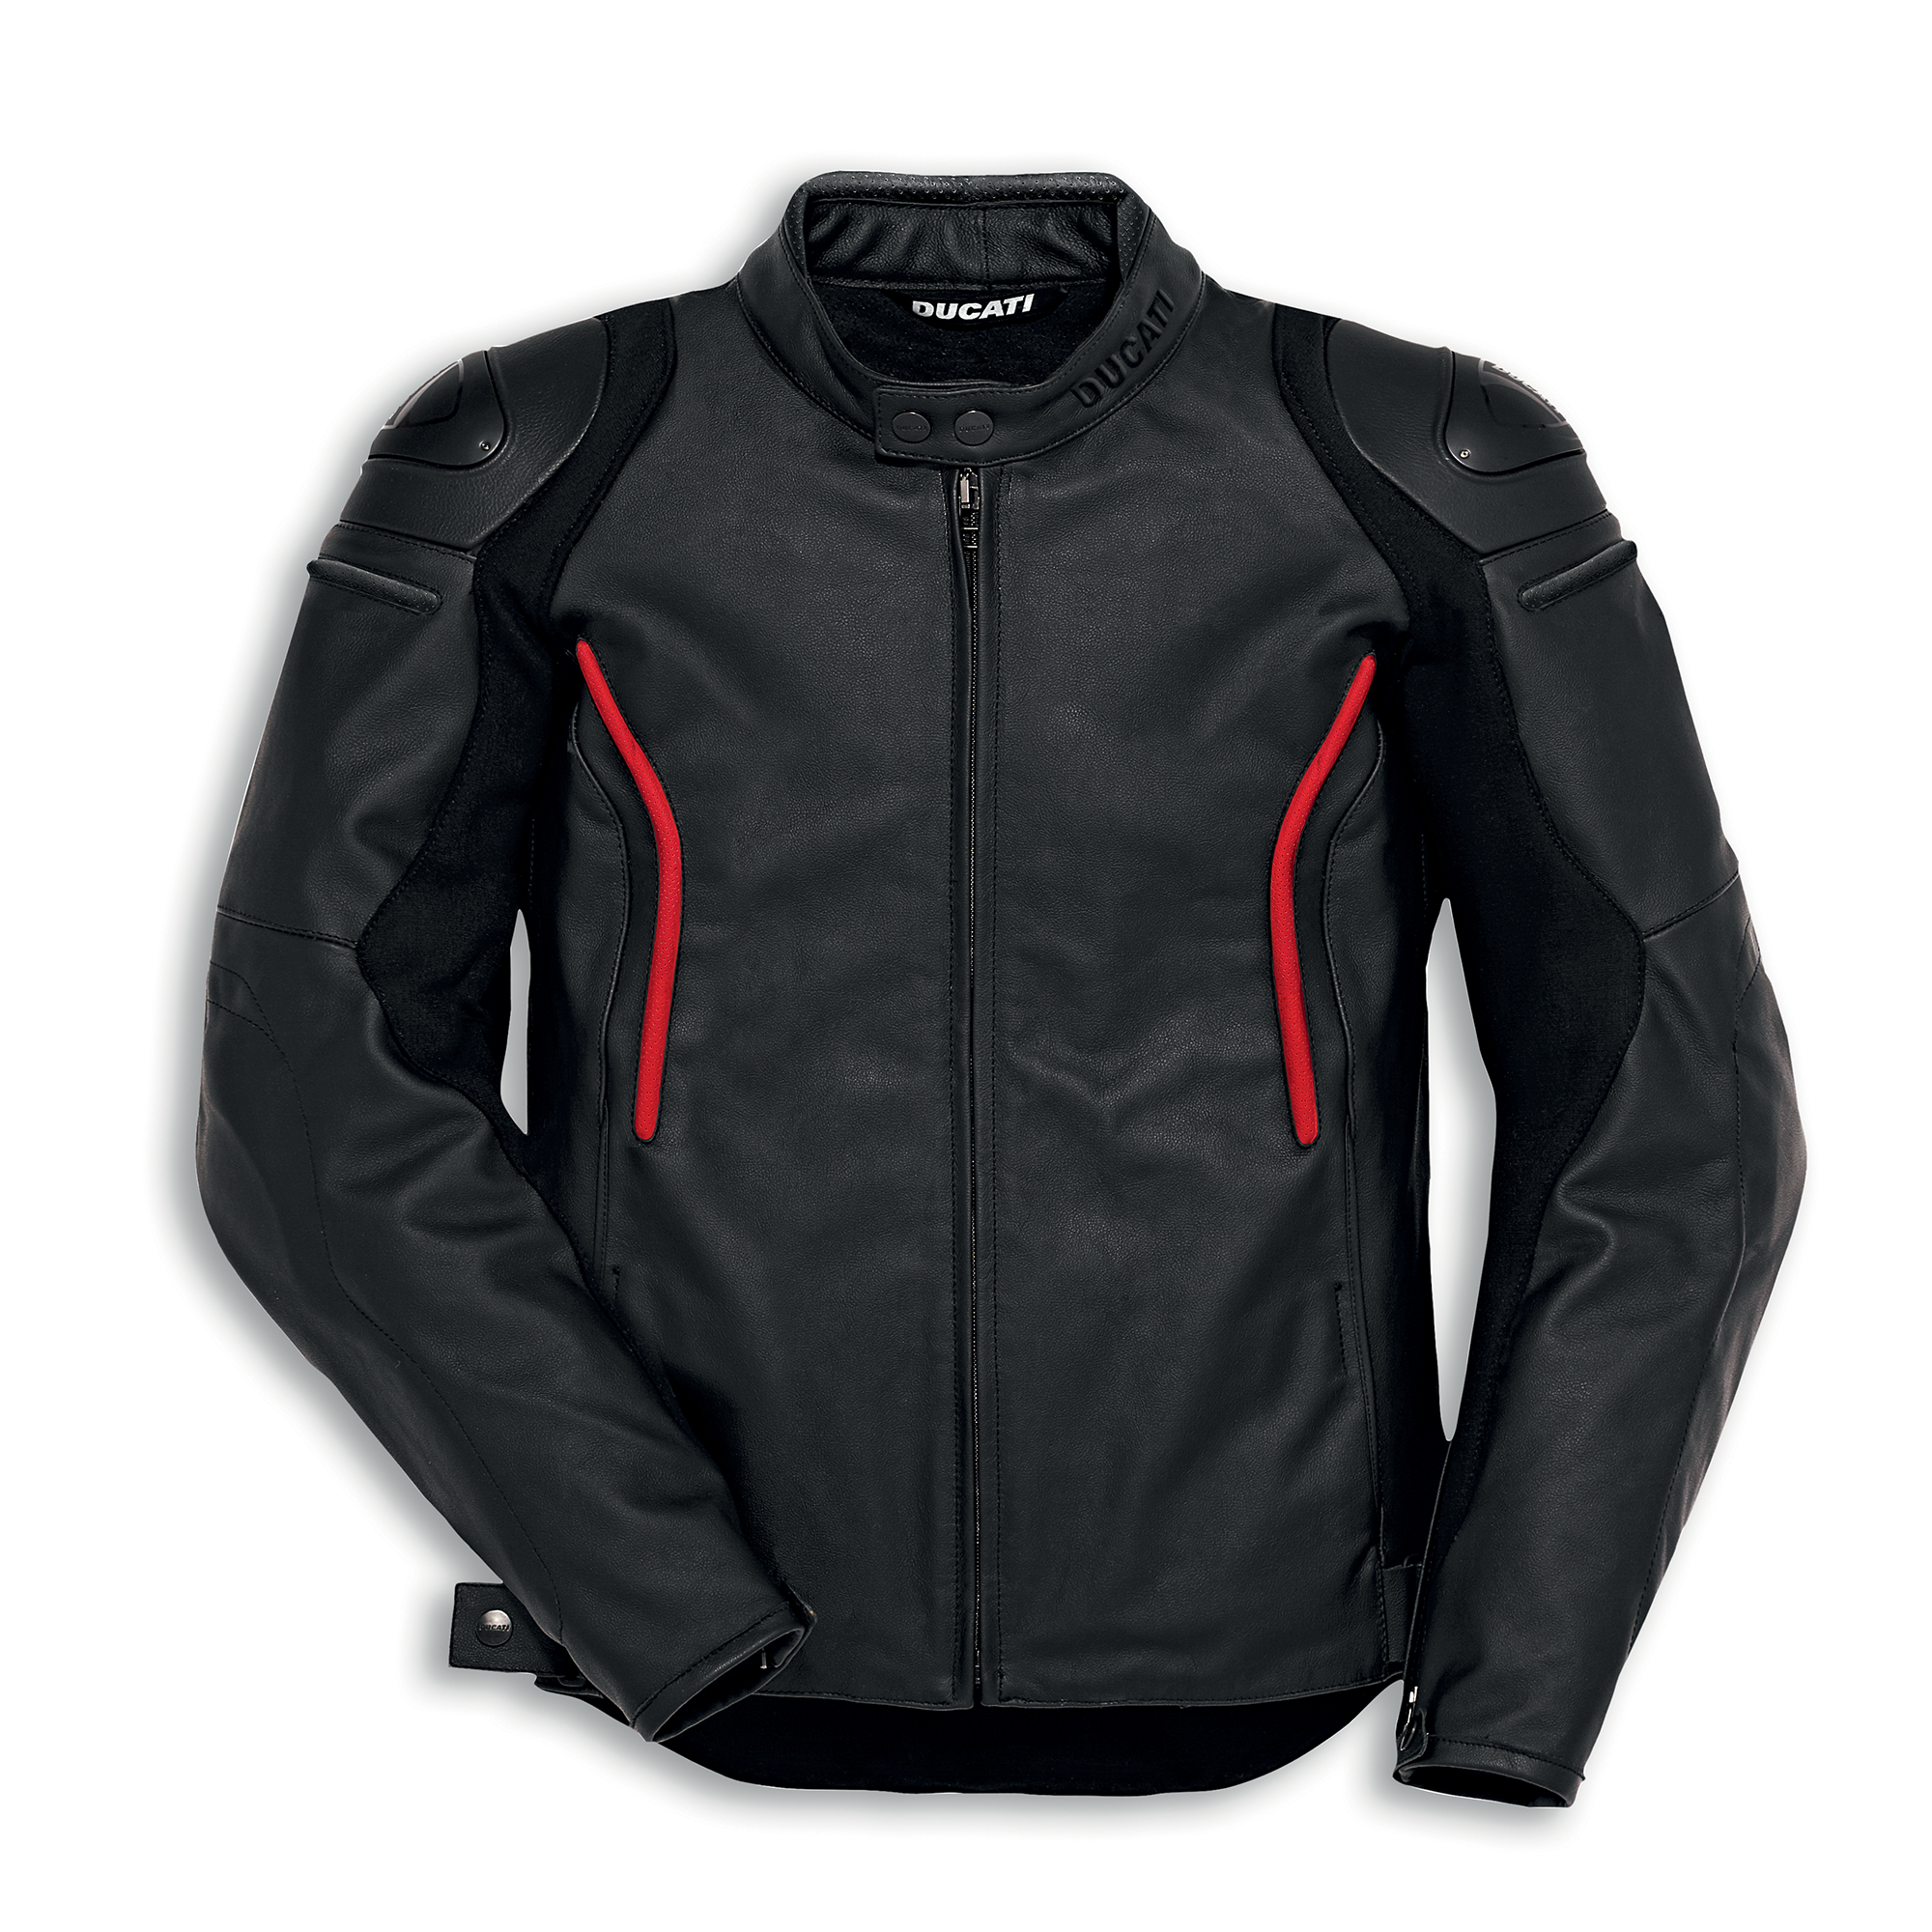 Stealth C2 Leather jacket 981031848